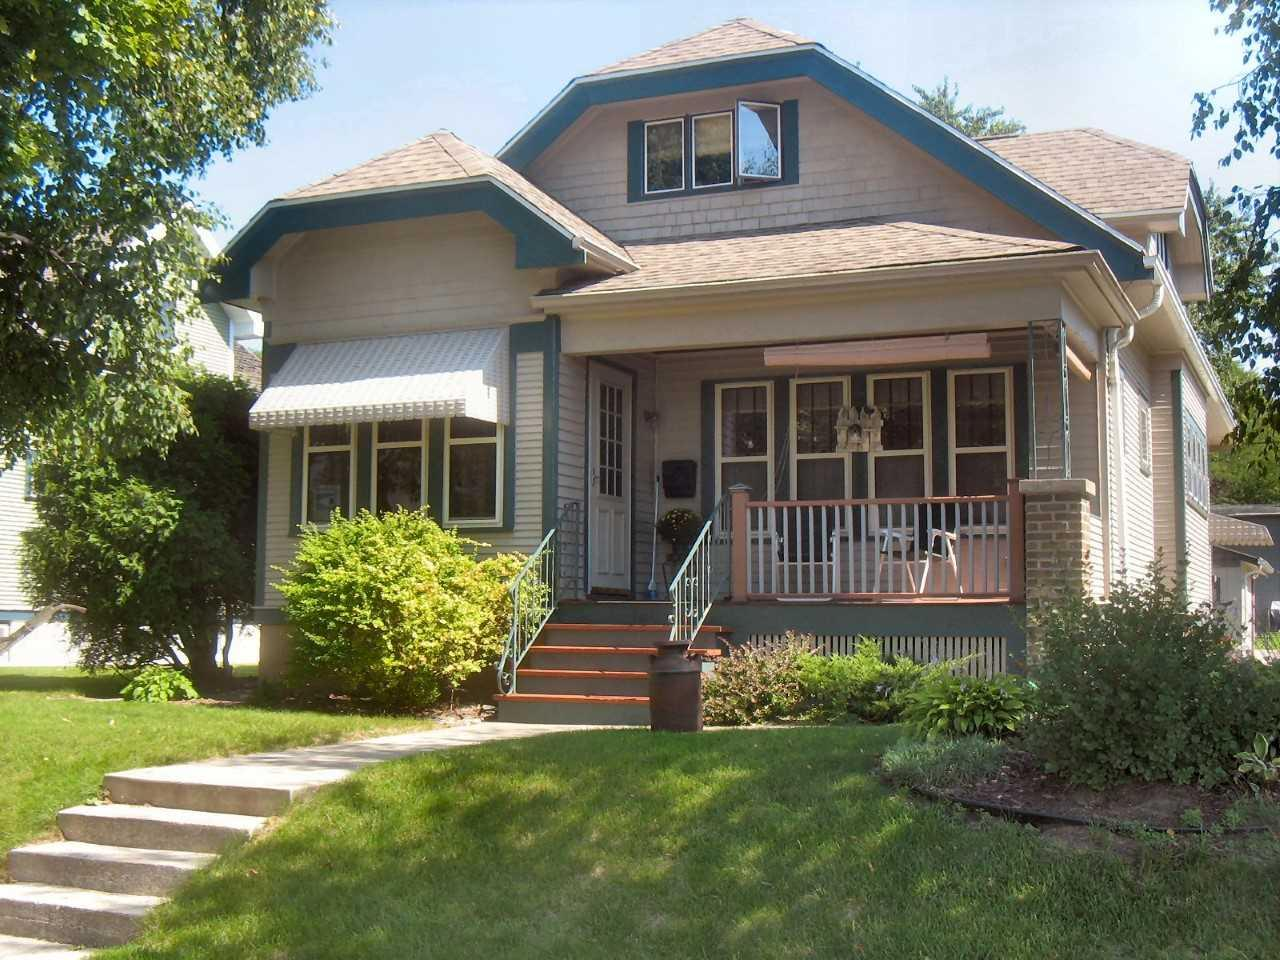 Welcome to all the warmth & character of this appealing craftsman style home. Quality details include beautiful maple hardwood floors & original woodwork throughout main floor, crown molding, lovely tray-ceilings, built-in buffet w/leaded glass & stain glass windows. Full baths on both levels w/option for first floor master or spacious suite upstairs. Additional features include inviting covered porch, expandable attic, central vac, patio w/privacy fence & natural gas grill hook-up, gutter guards, lovely landscaping w/perennials, 2 car garage w/extra storage space & alley access as well as 2+ car parking pad. Meticulously maintained & conveniently located near shopping, schools & park.